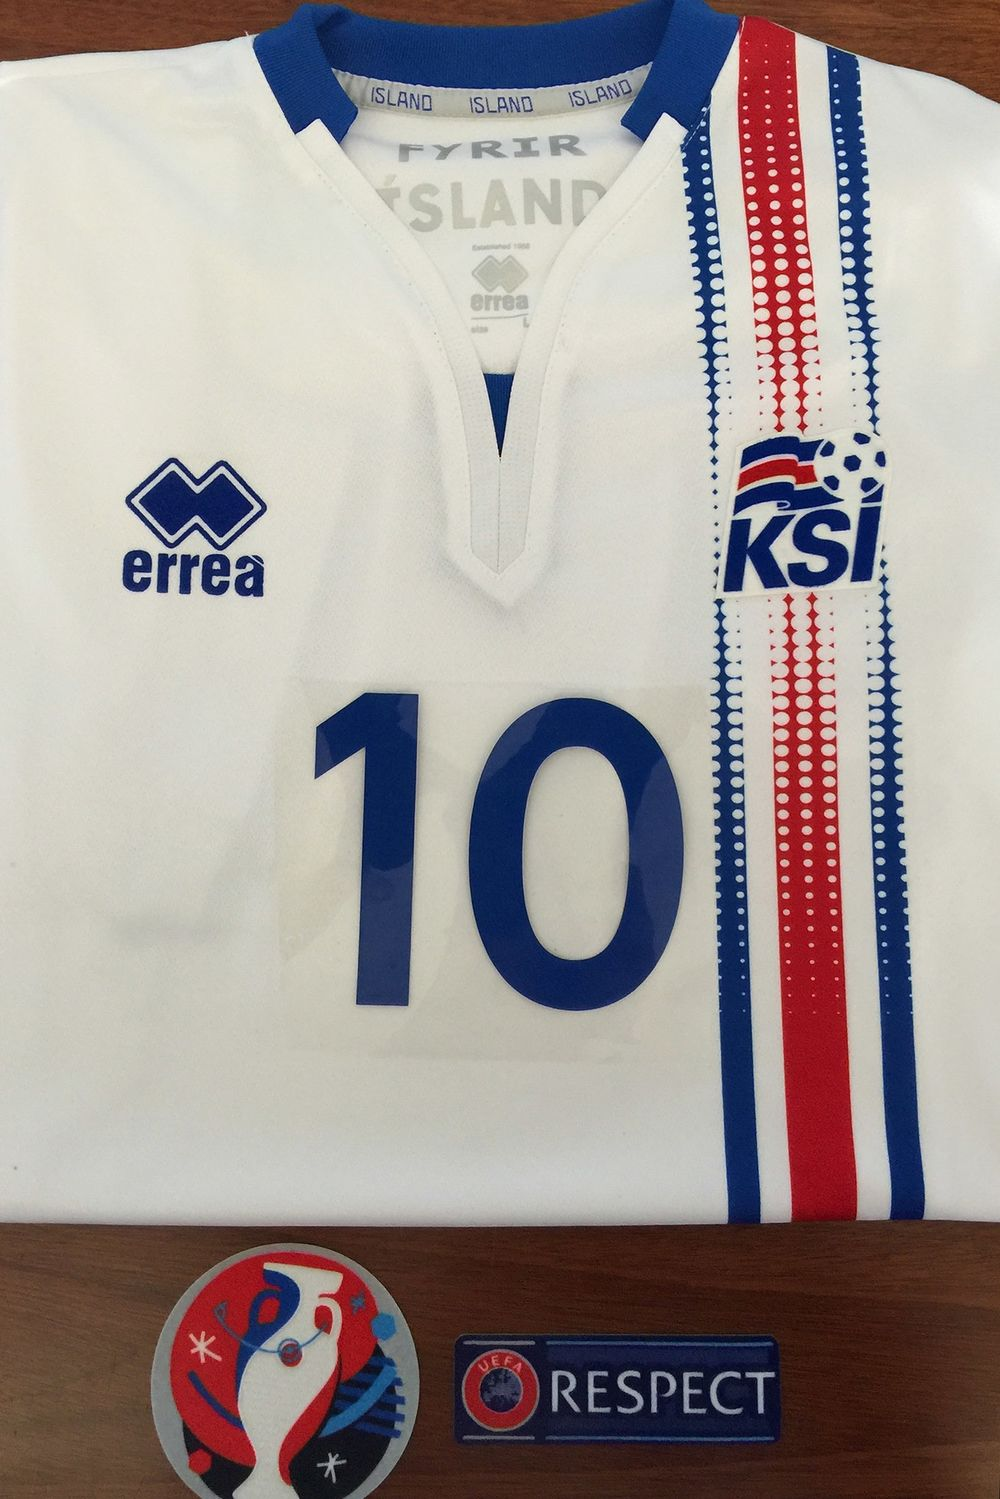 5ab8012c8 Iceland Miracle Soccer Run Creating Havoc for Jersey Sellers - Bloomberg